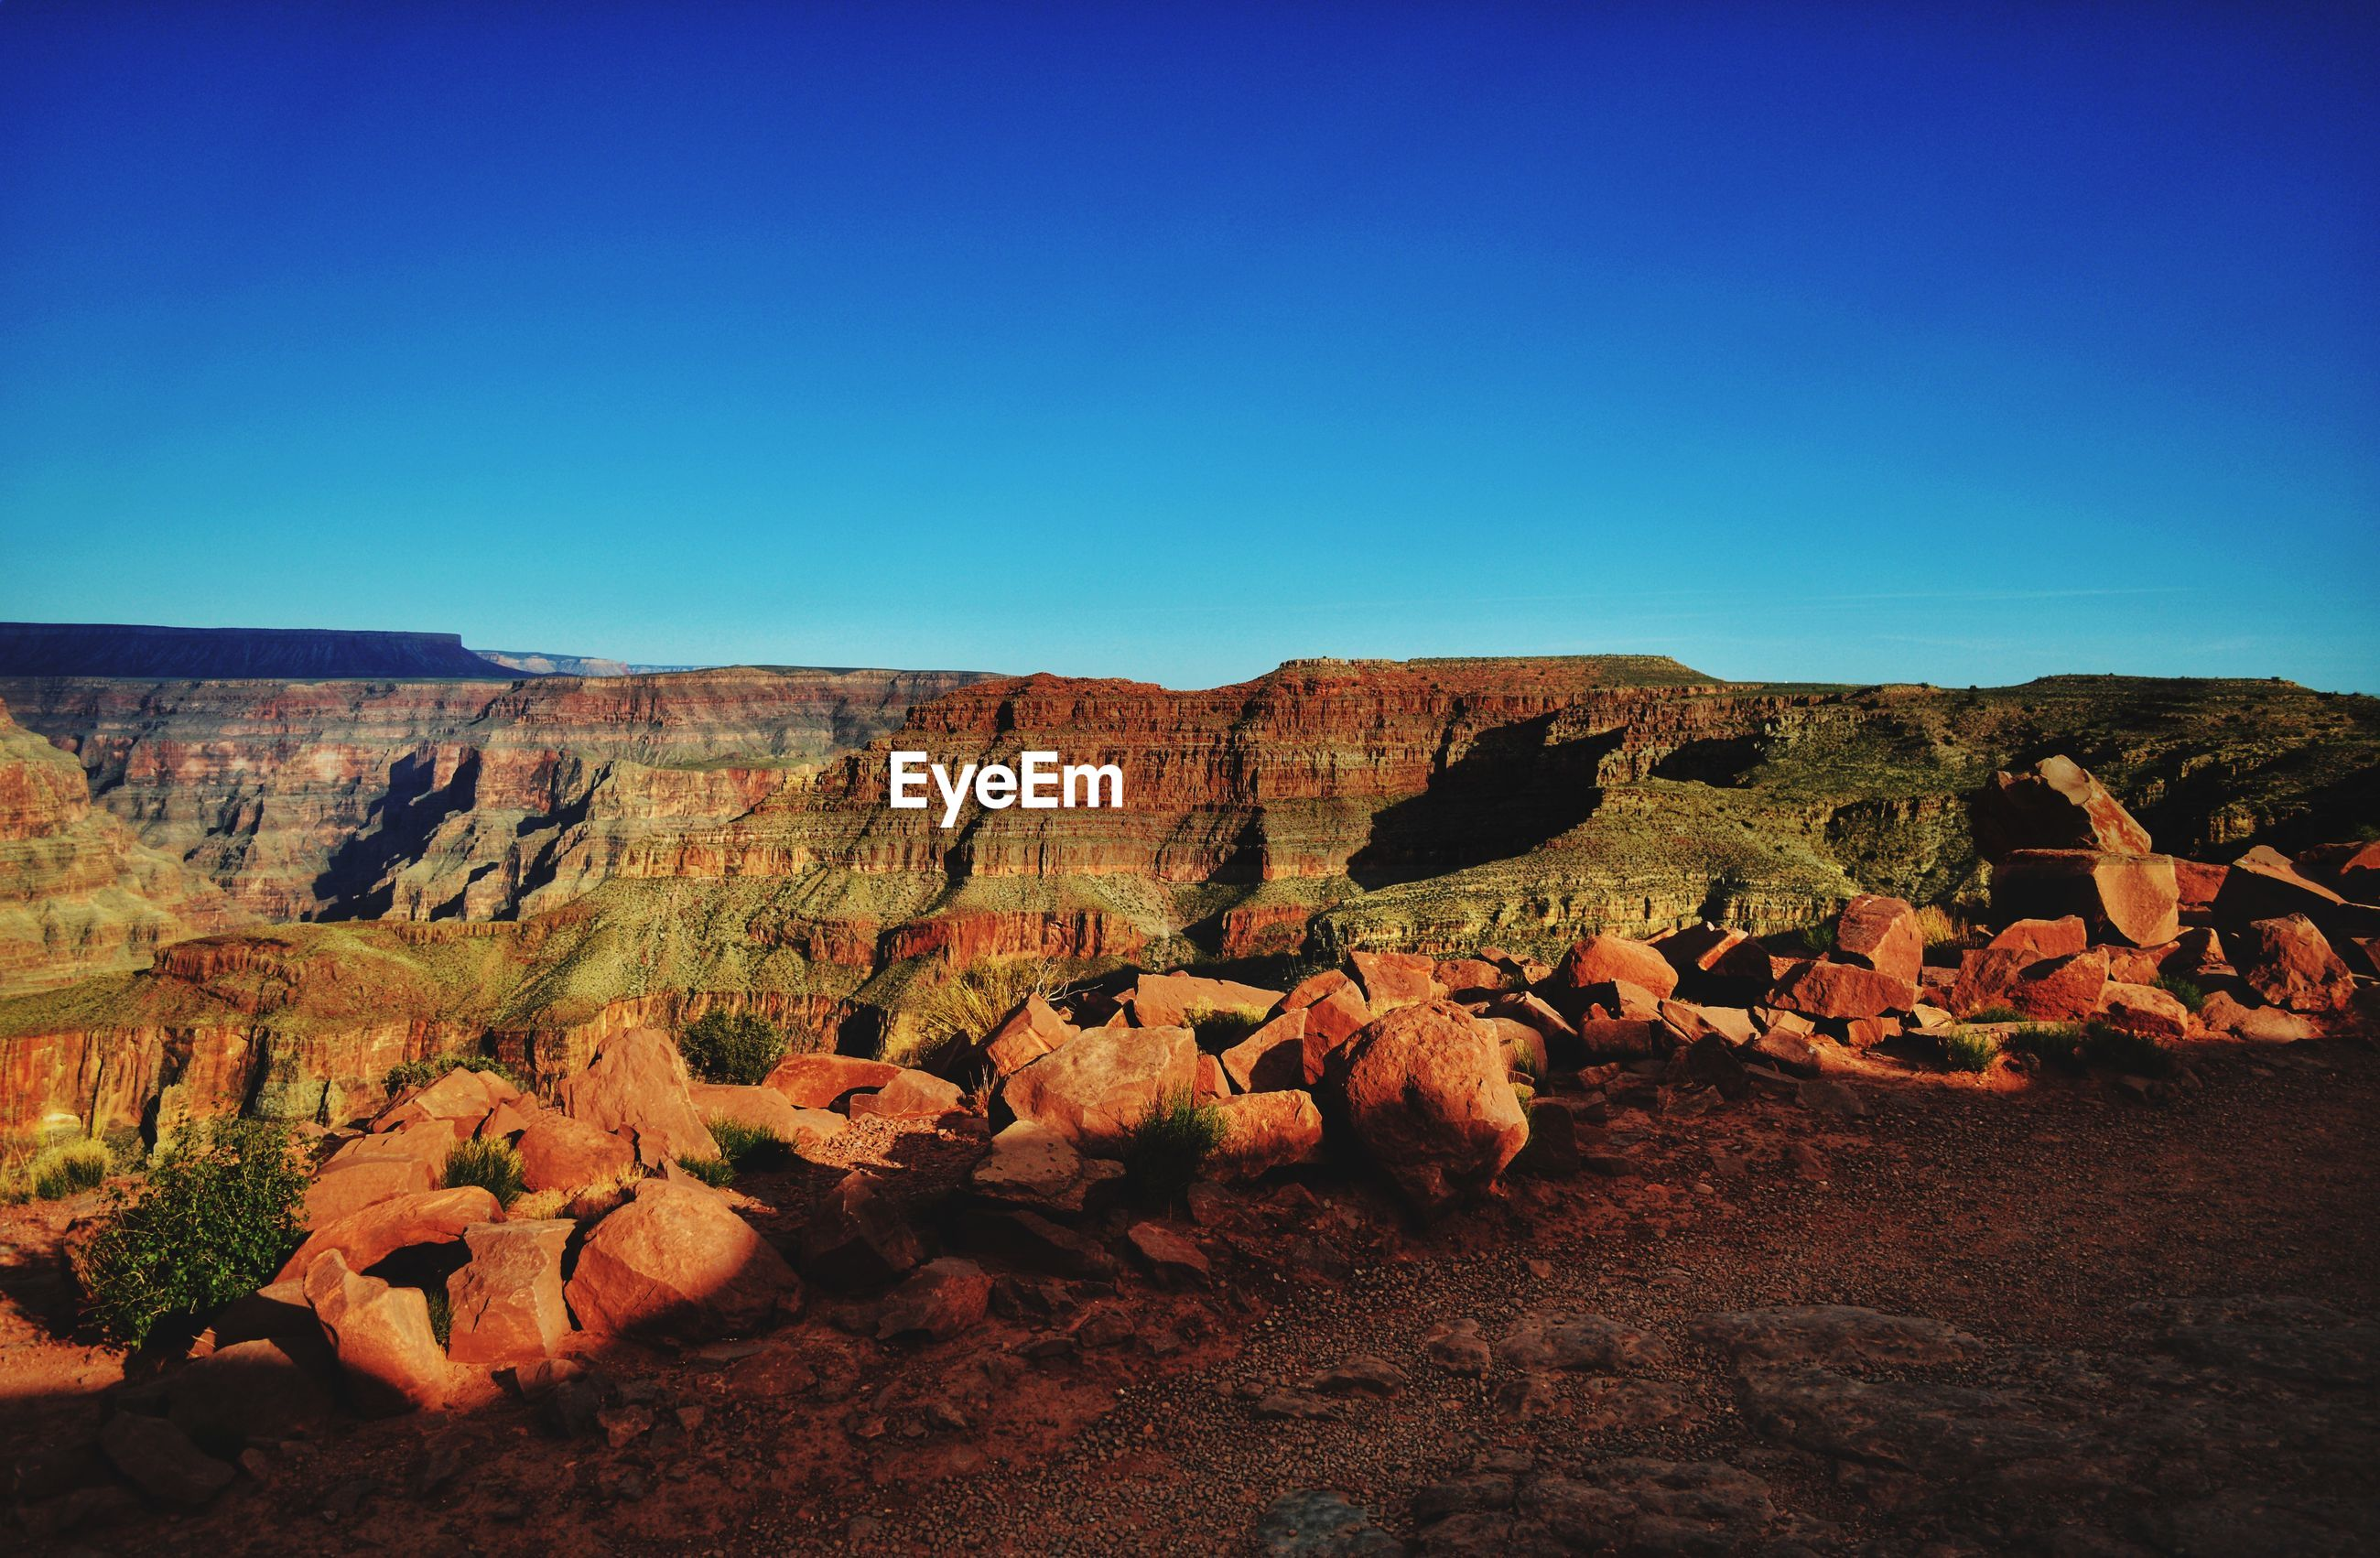 SCENIC VIEW OF ROCKS AGAINST CLEAR SKY